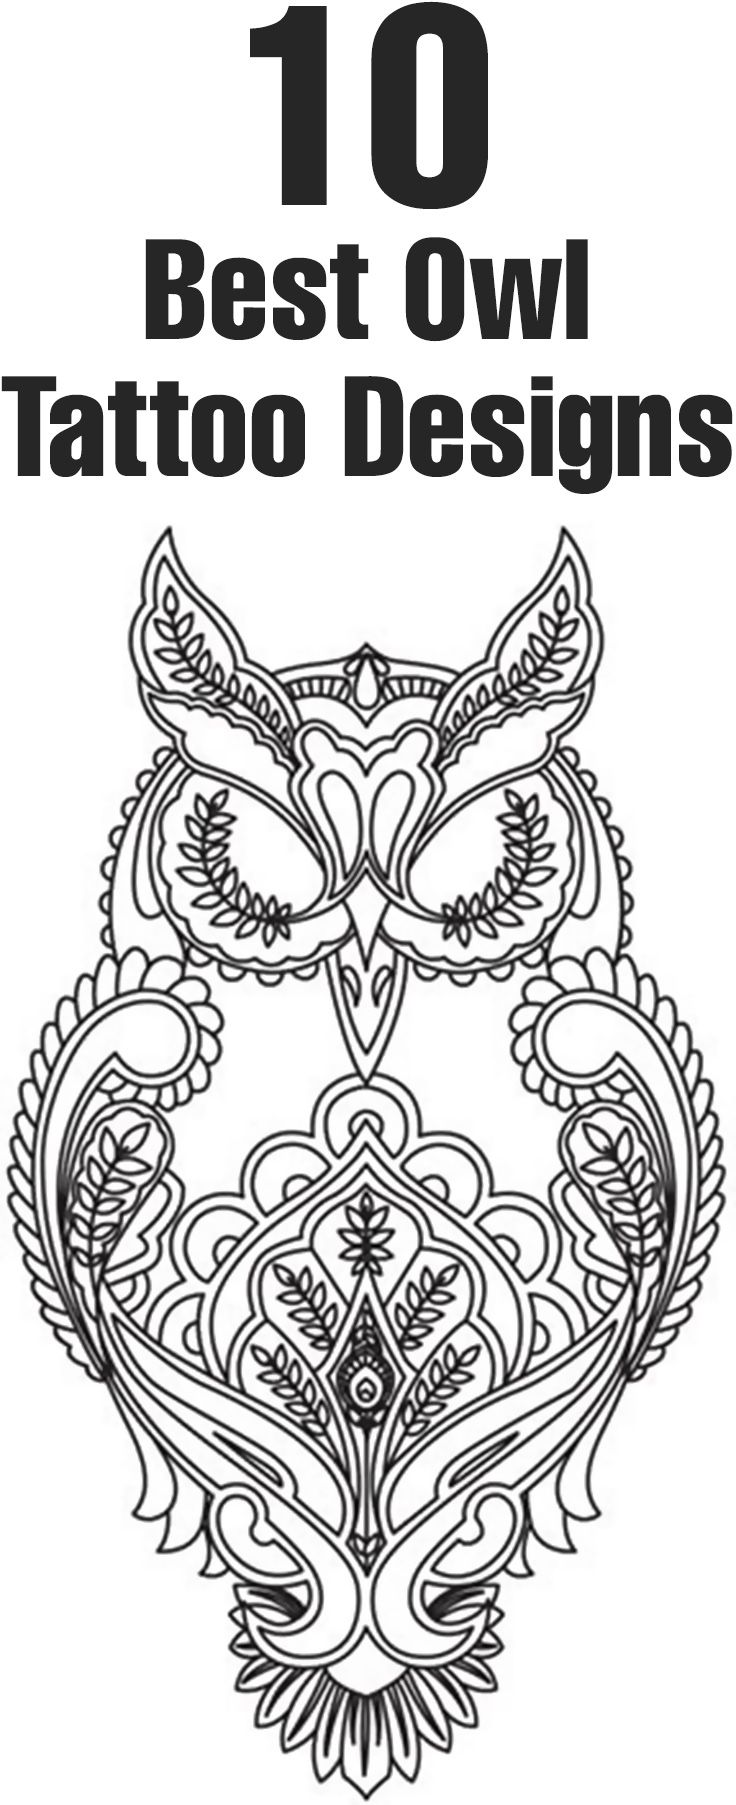 Best Owl Tattoo Designs – Our Top 10 @missywell2003